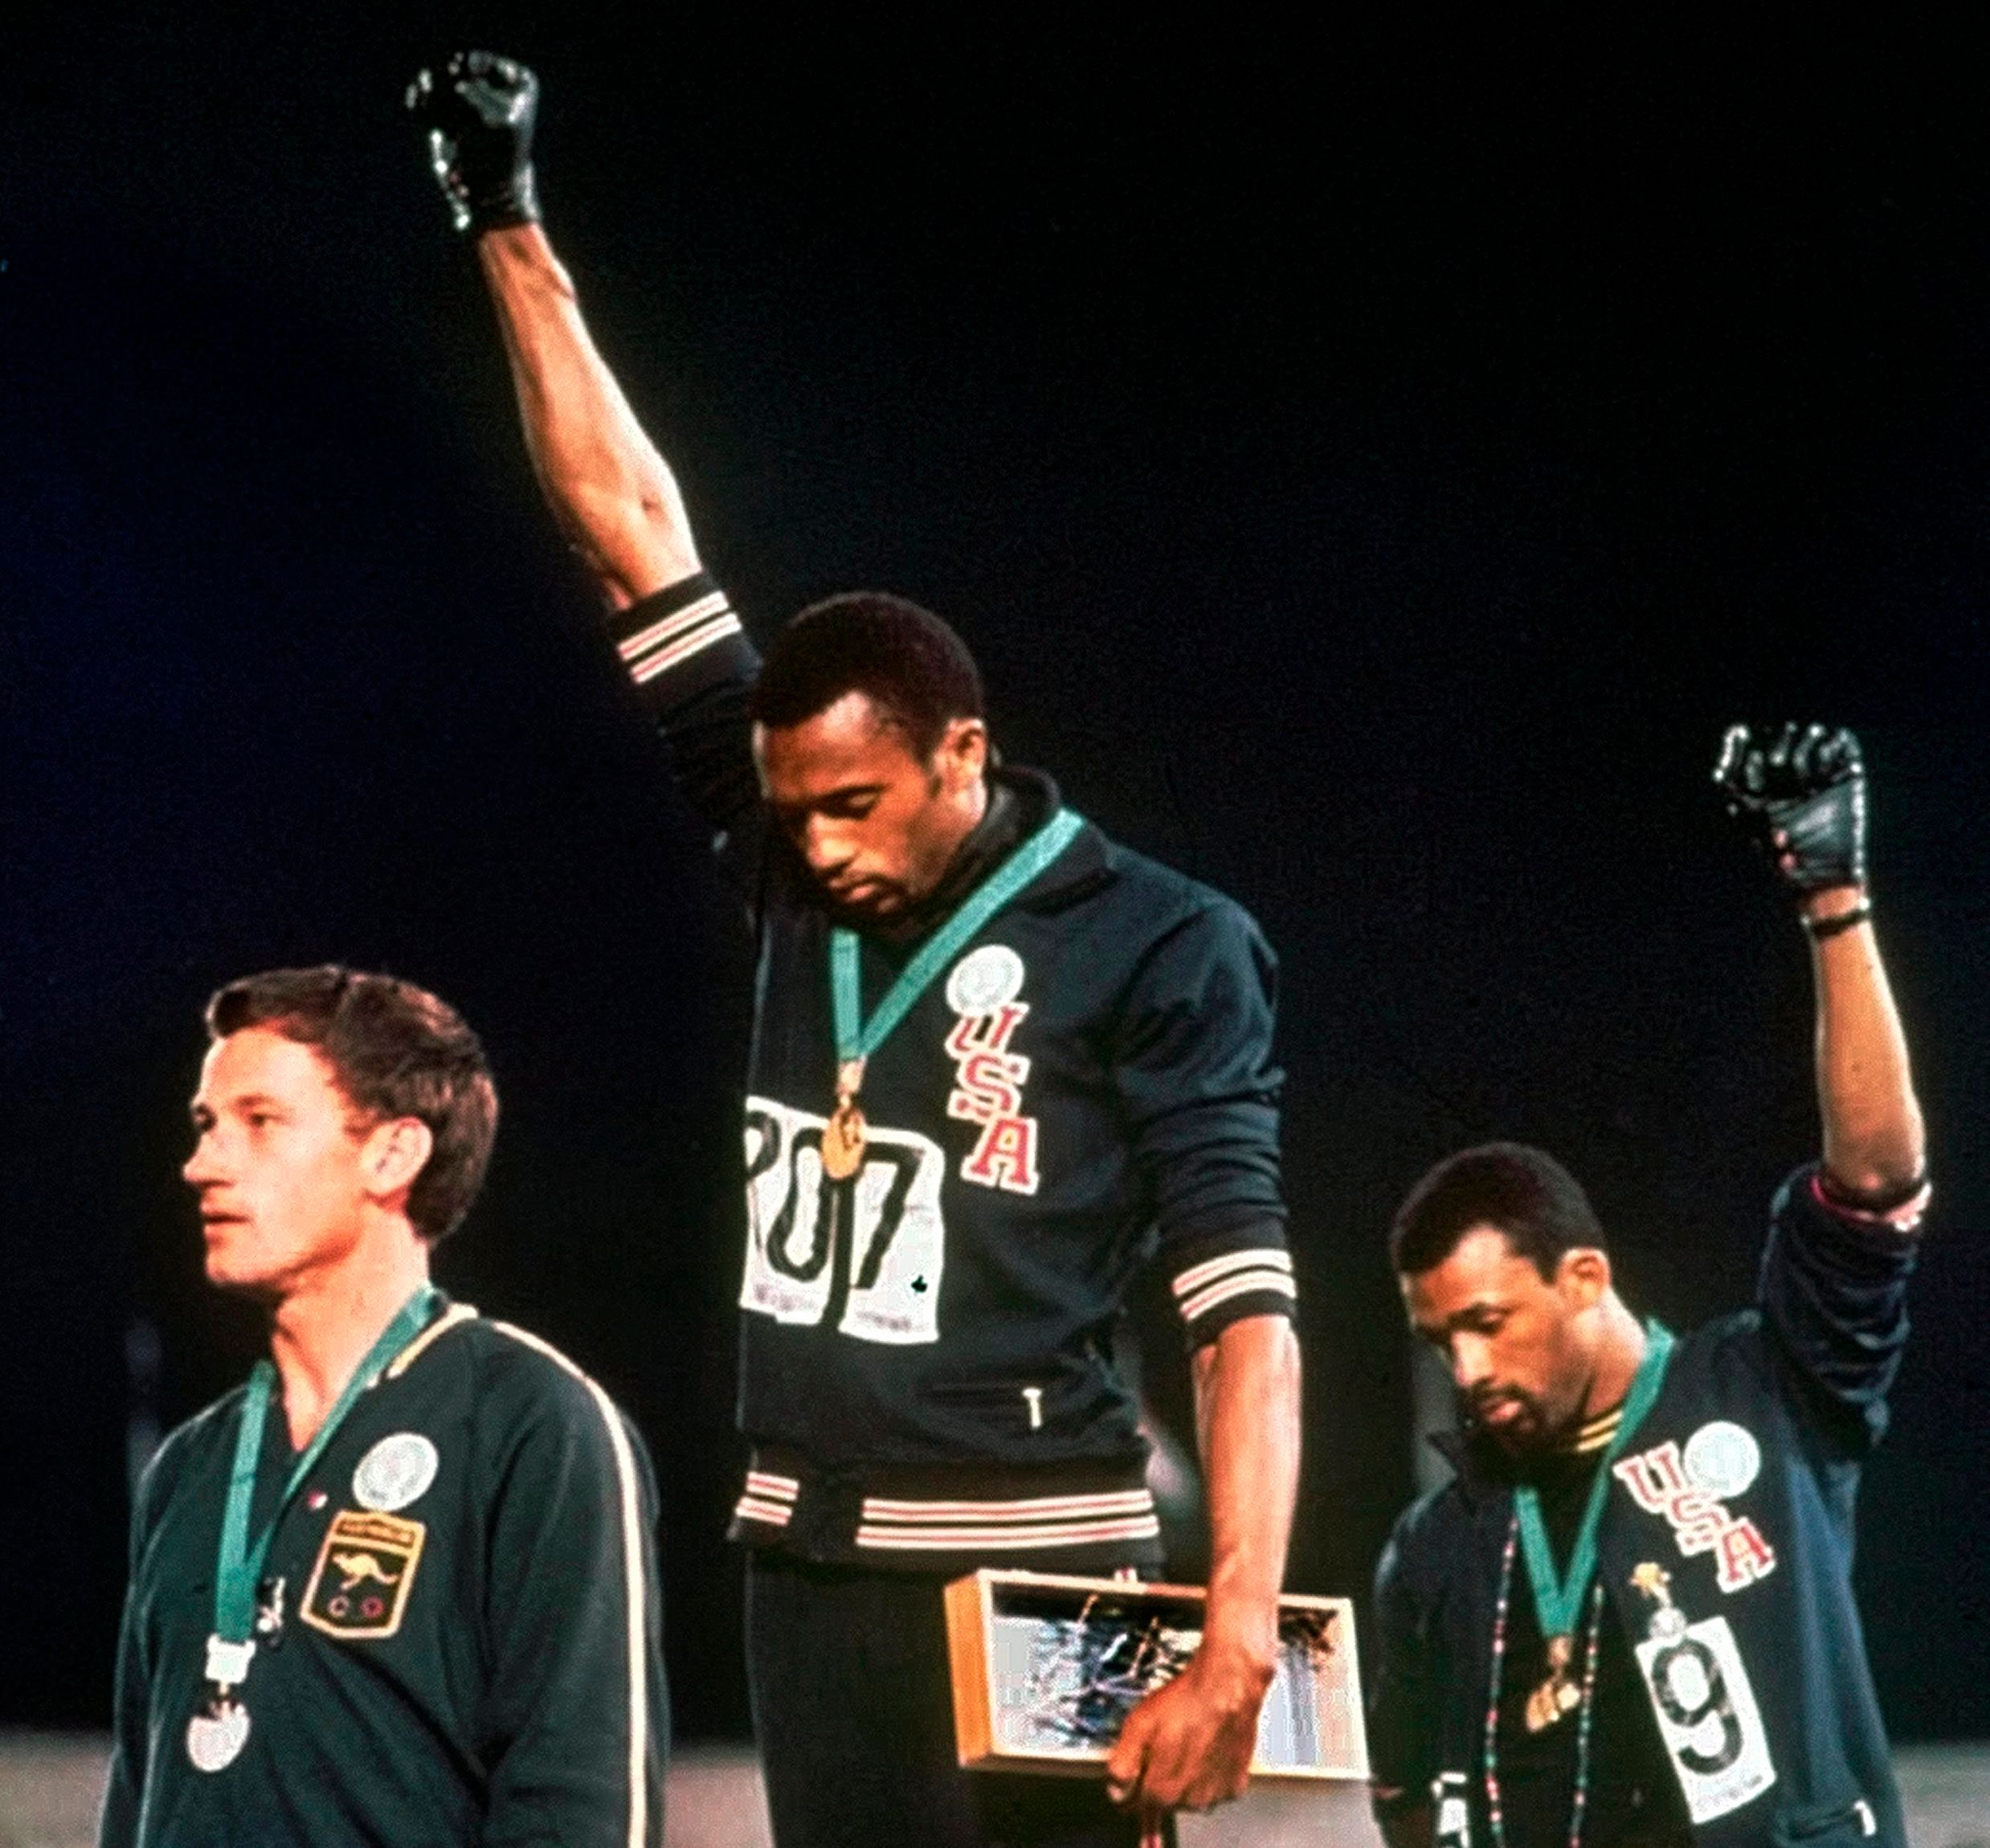 FILE - In this Oct. 16, 1968, file photo, Australian silver medalist Peter Norman, left, stands on the podium as Americans Tommie Smith, center, and John Carlos raise their gloved fists in a human rights protest. Australian Olympic Committee (AOC) awarded on Saturday, April 28, 2018, a posthumous Order of Merit to Norman. AOC President John Coates said that Norman's achievements as an athlete - his silver-medal winning time of 20.06 seconds at Mexico City remains an Australian record 50 years after he set the mark - were dwarfed by his support for the gold and bronze medalists who raised their gloved fists and bowed their heads during the American national anthem. (AP Photo, File)